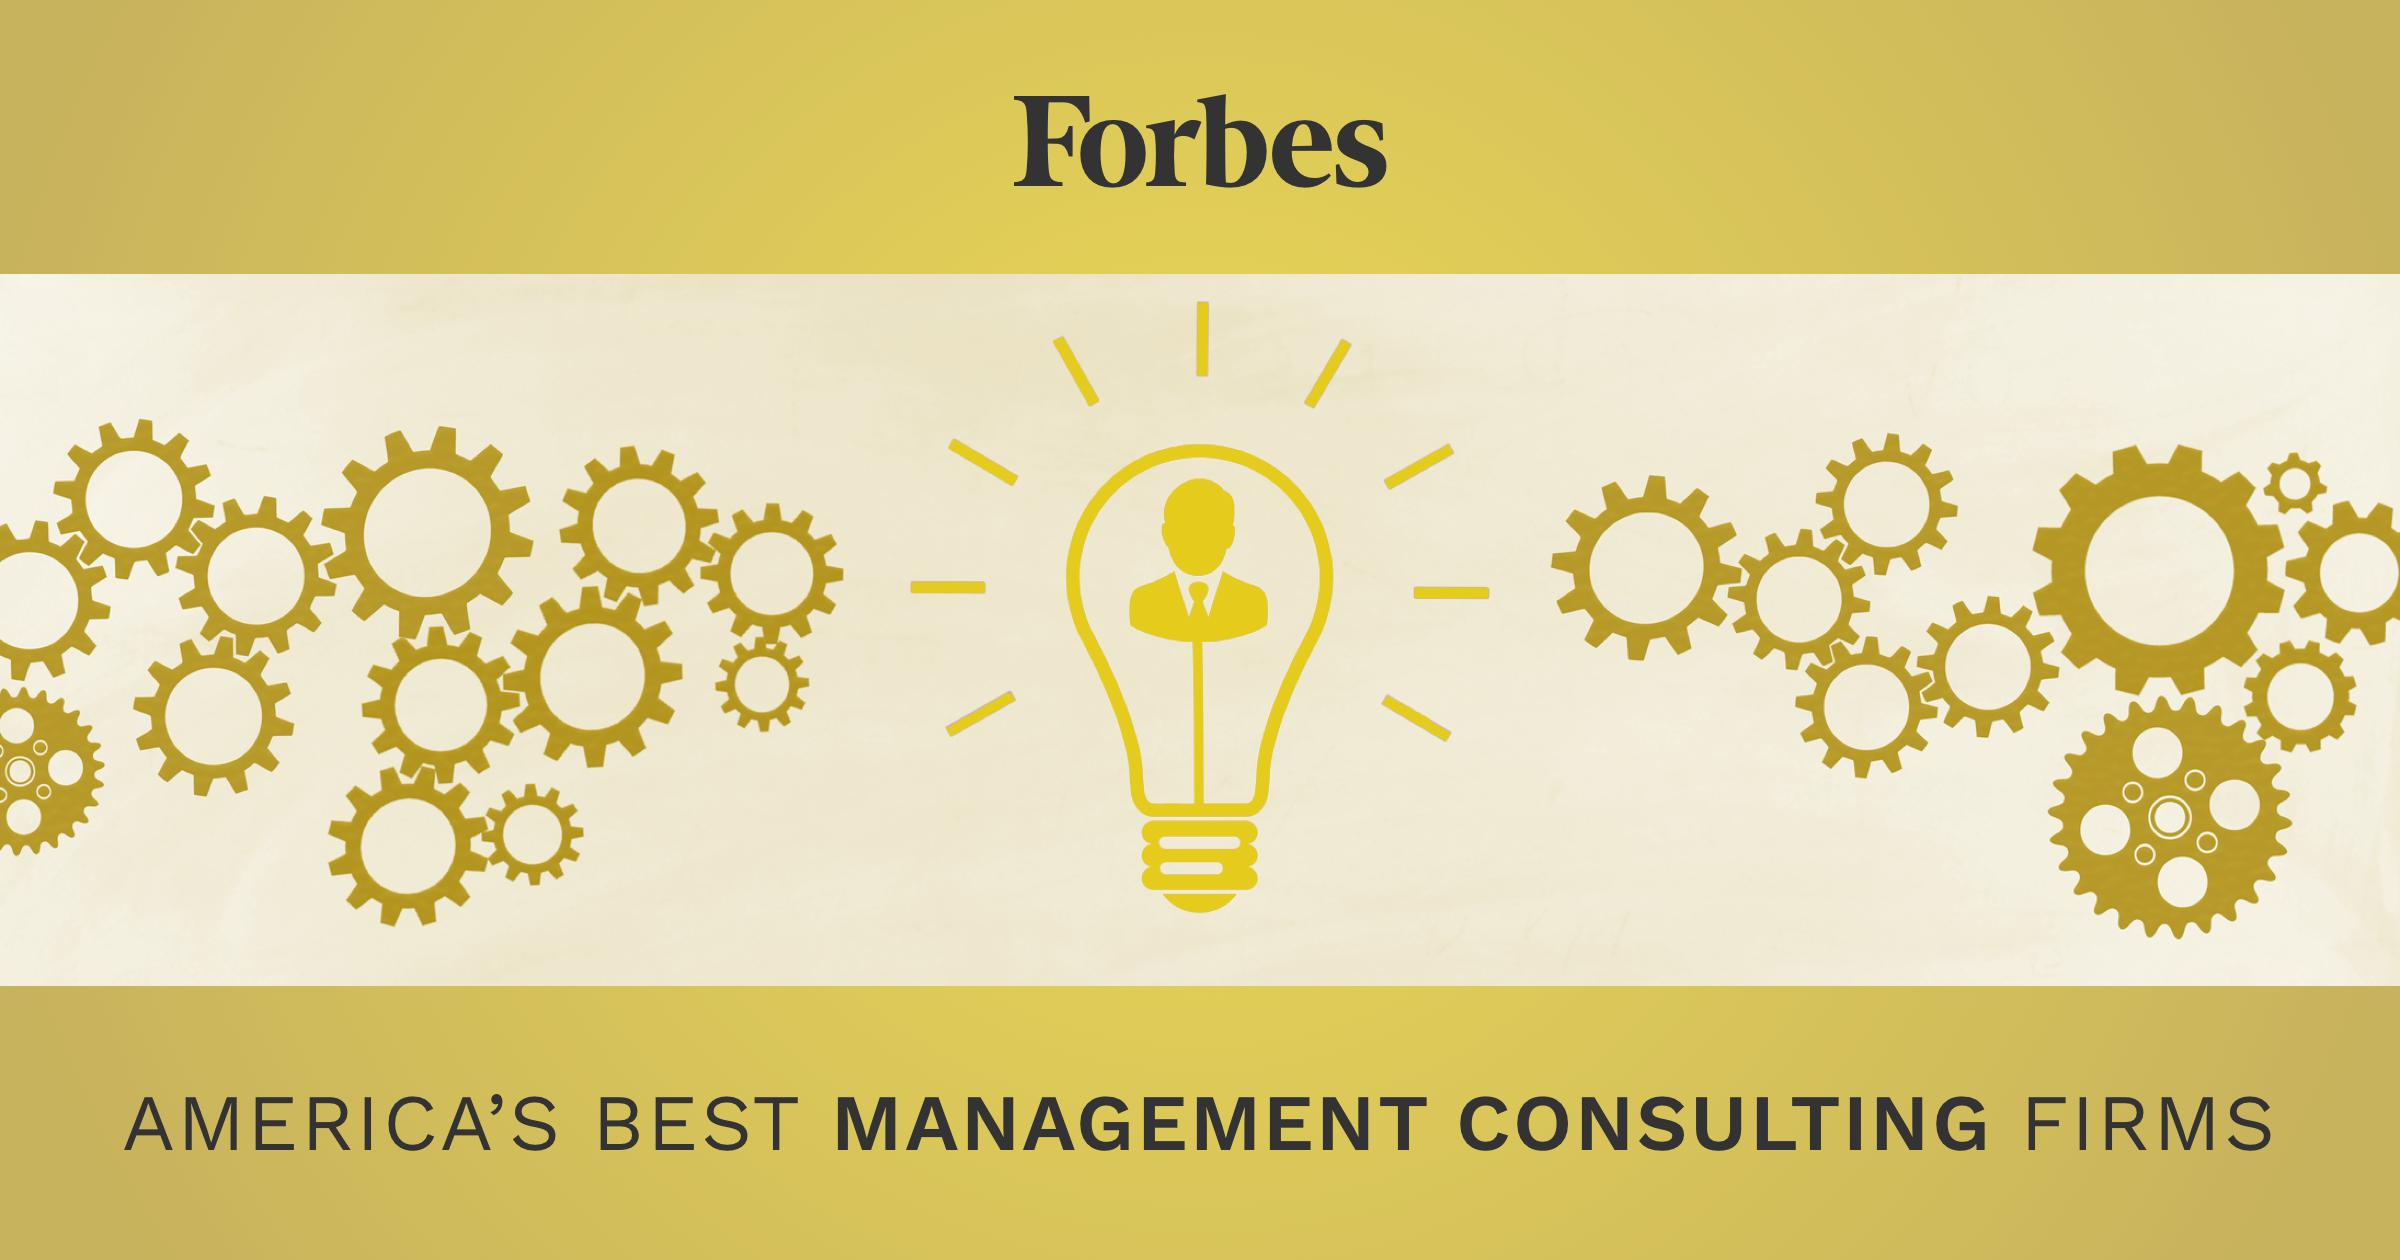 America's Best Management Consulting Firms